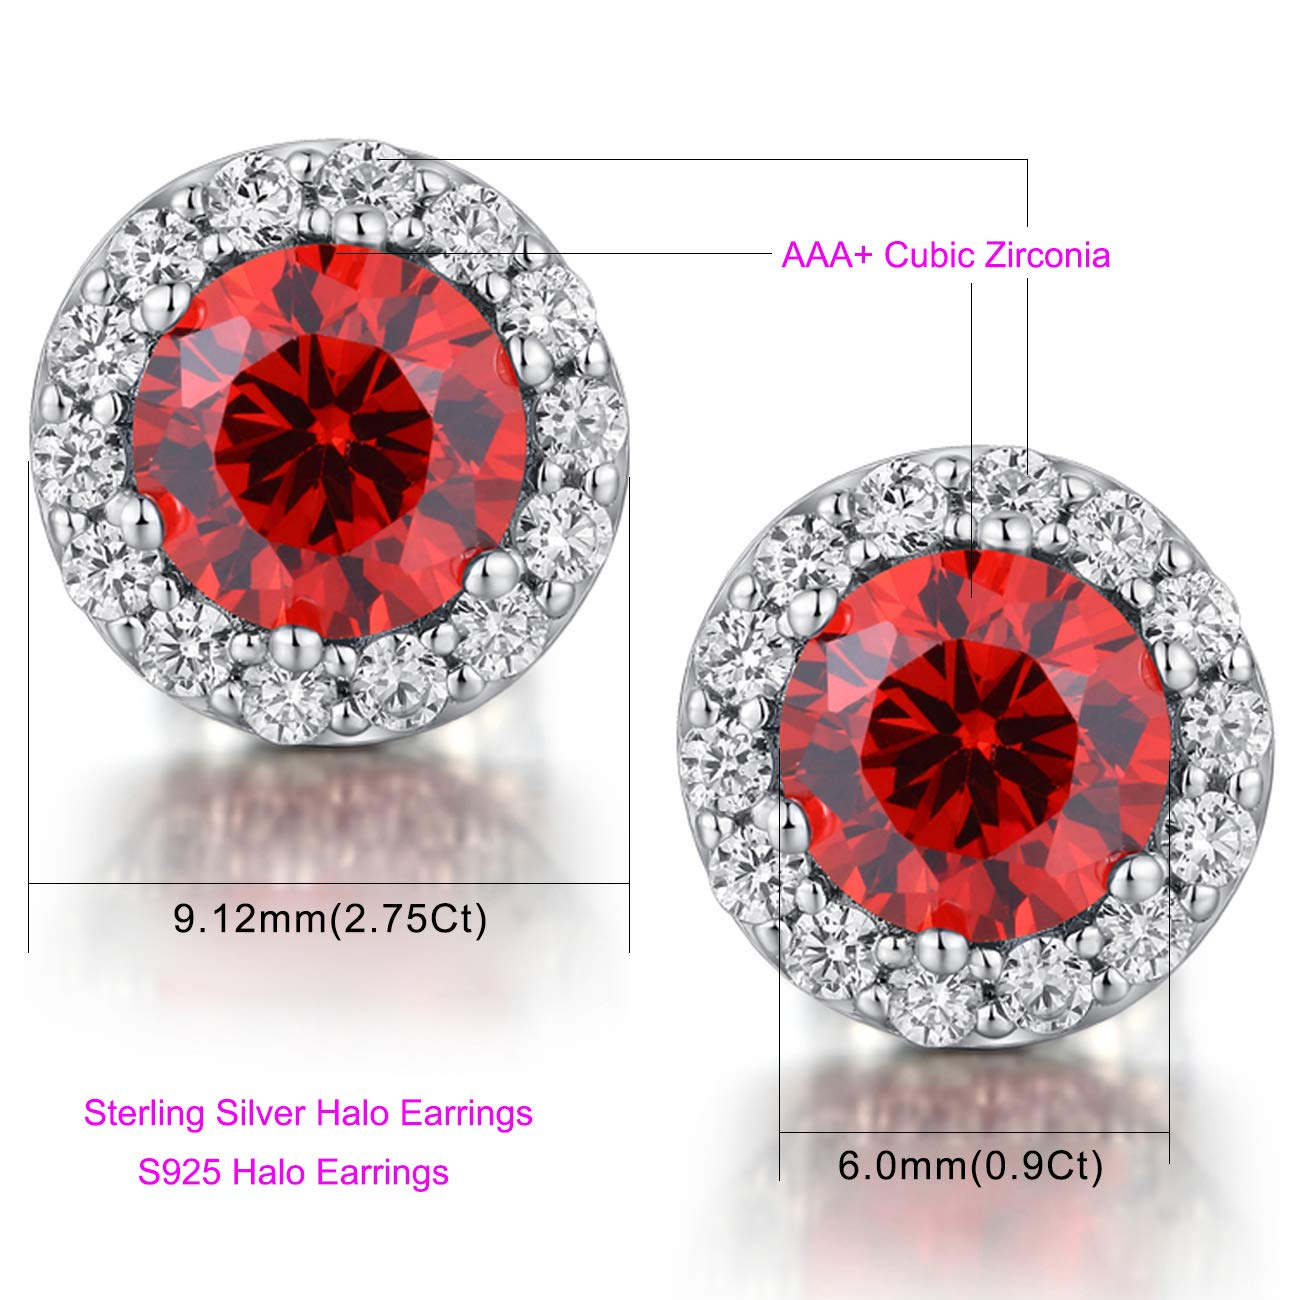 ZowBinBin Sterling Silver Round Cut Cubic Zirconia Stud Earrings,Halo Stud Earrings,Bezel-set Martini Stud Earrings for Christmas Day,Valentines Day,Anniversary,Birthday and Wedding//Engagement 18K White Gold Plated Round Halo Stud Earrings EHEC/_W